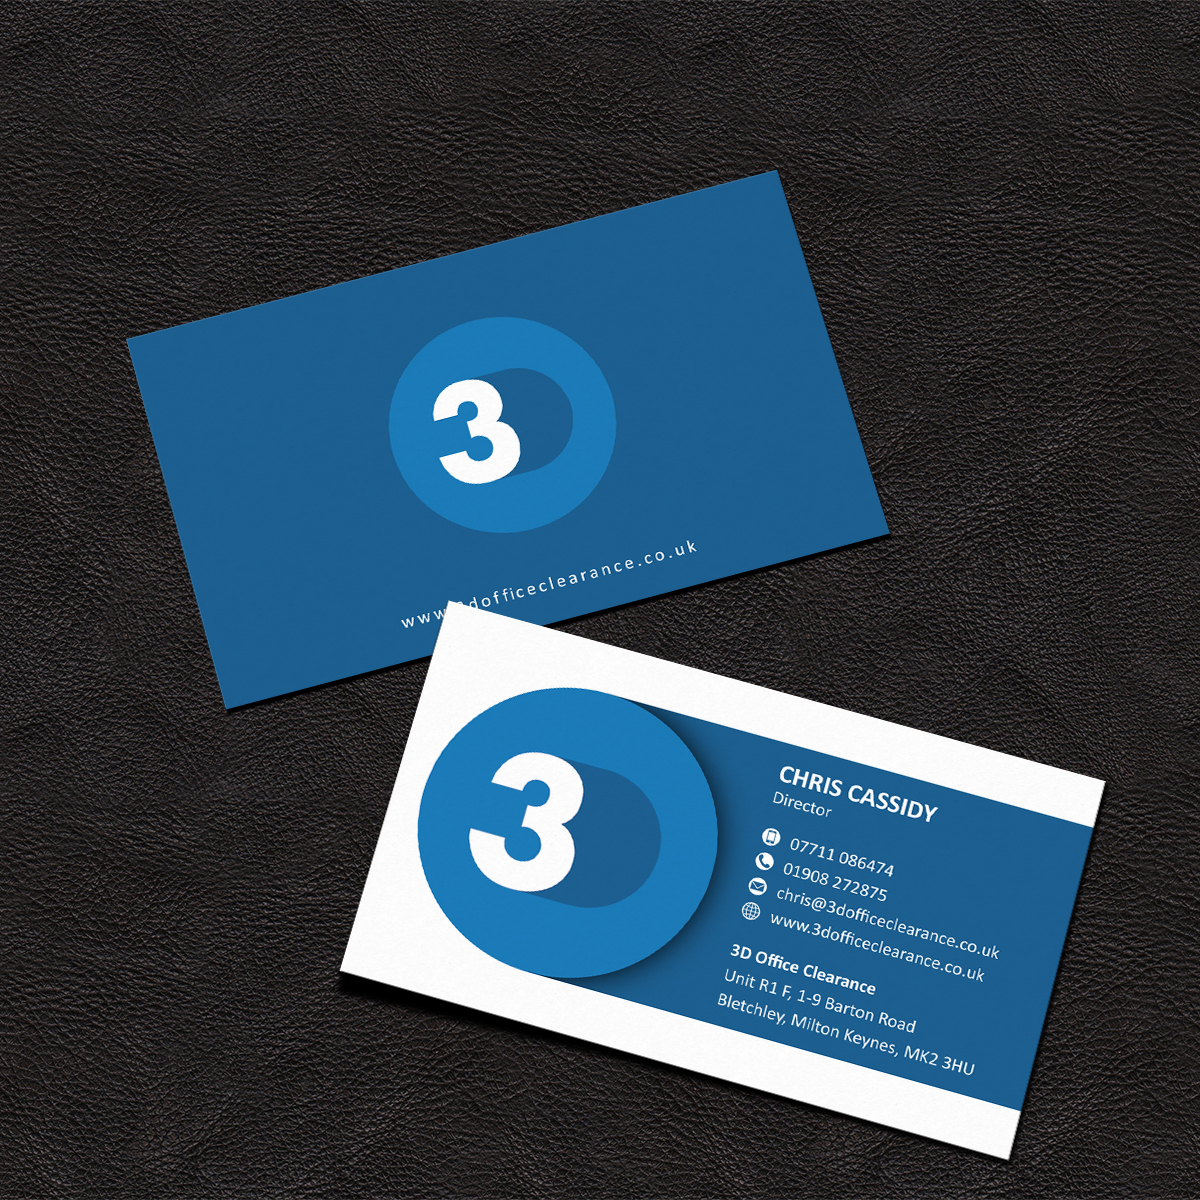 Modern professional business card design for chris cassidy by business card design by grafactory for business card design for office furniture clearance company design reheart Image collections